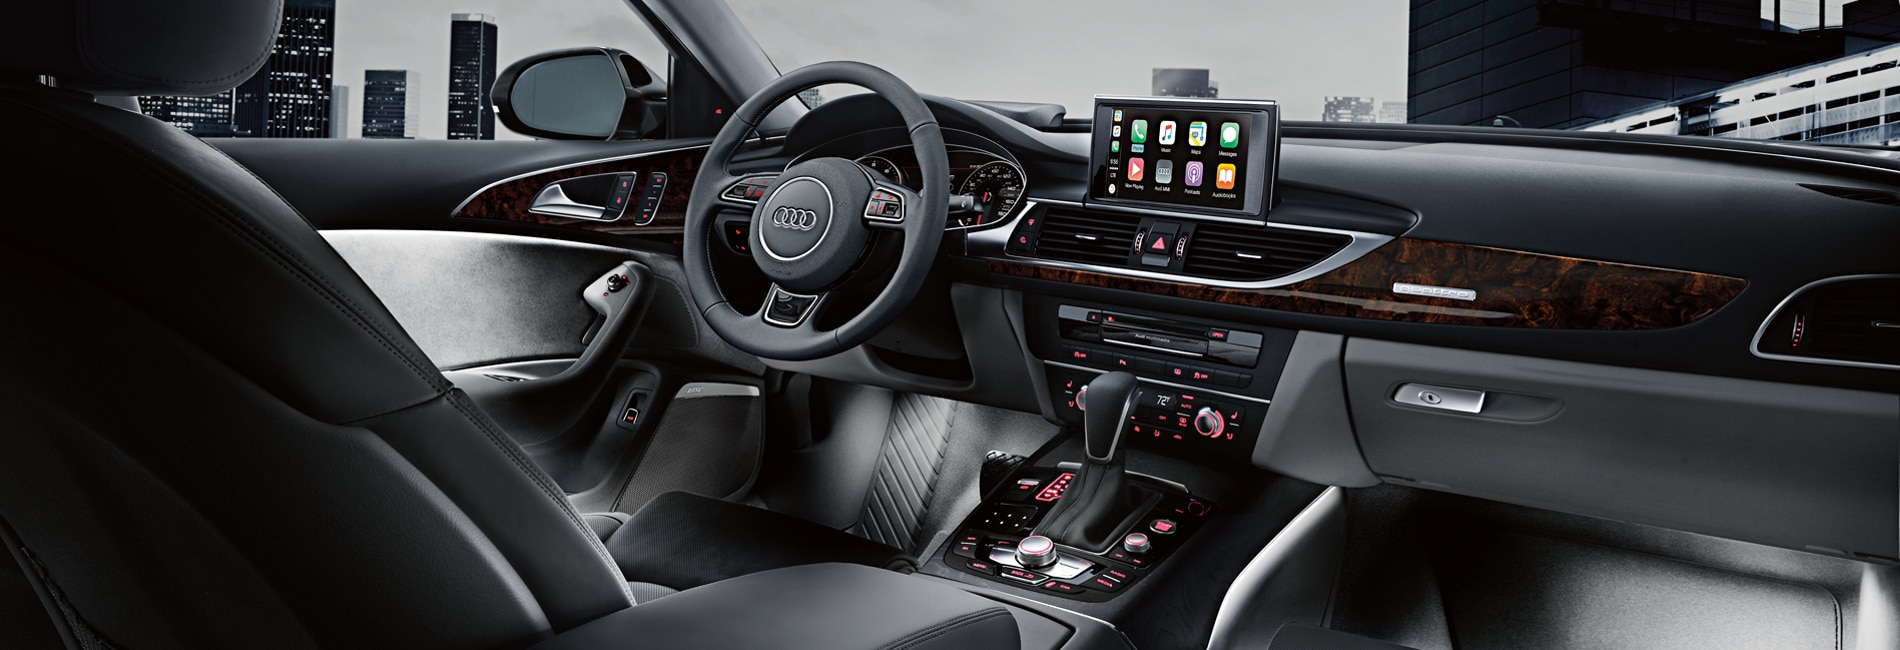 Audi A6 Interior Vehicle Features